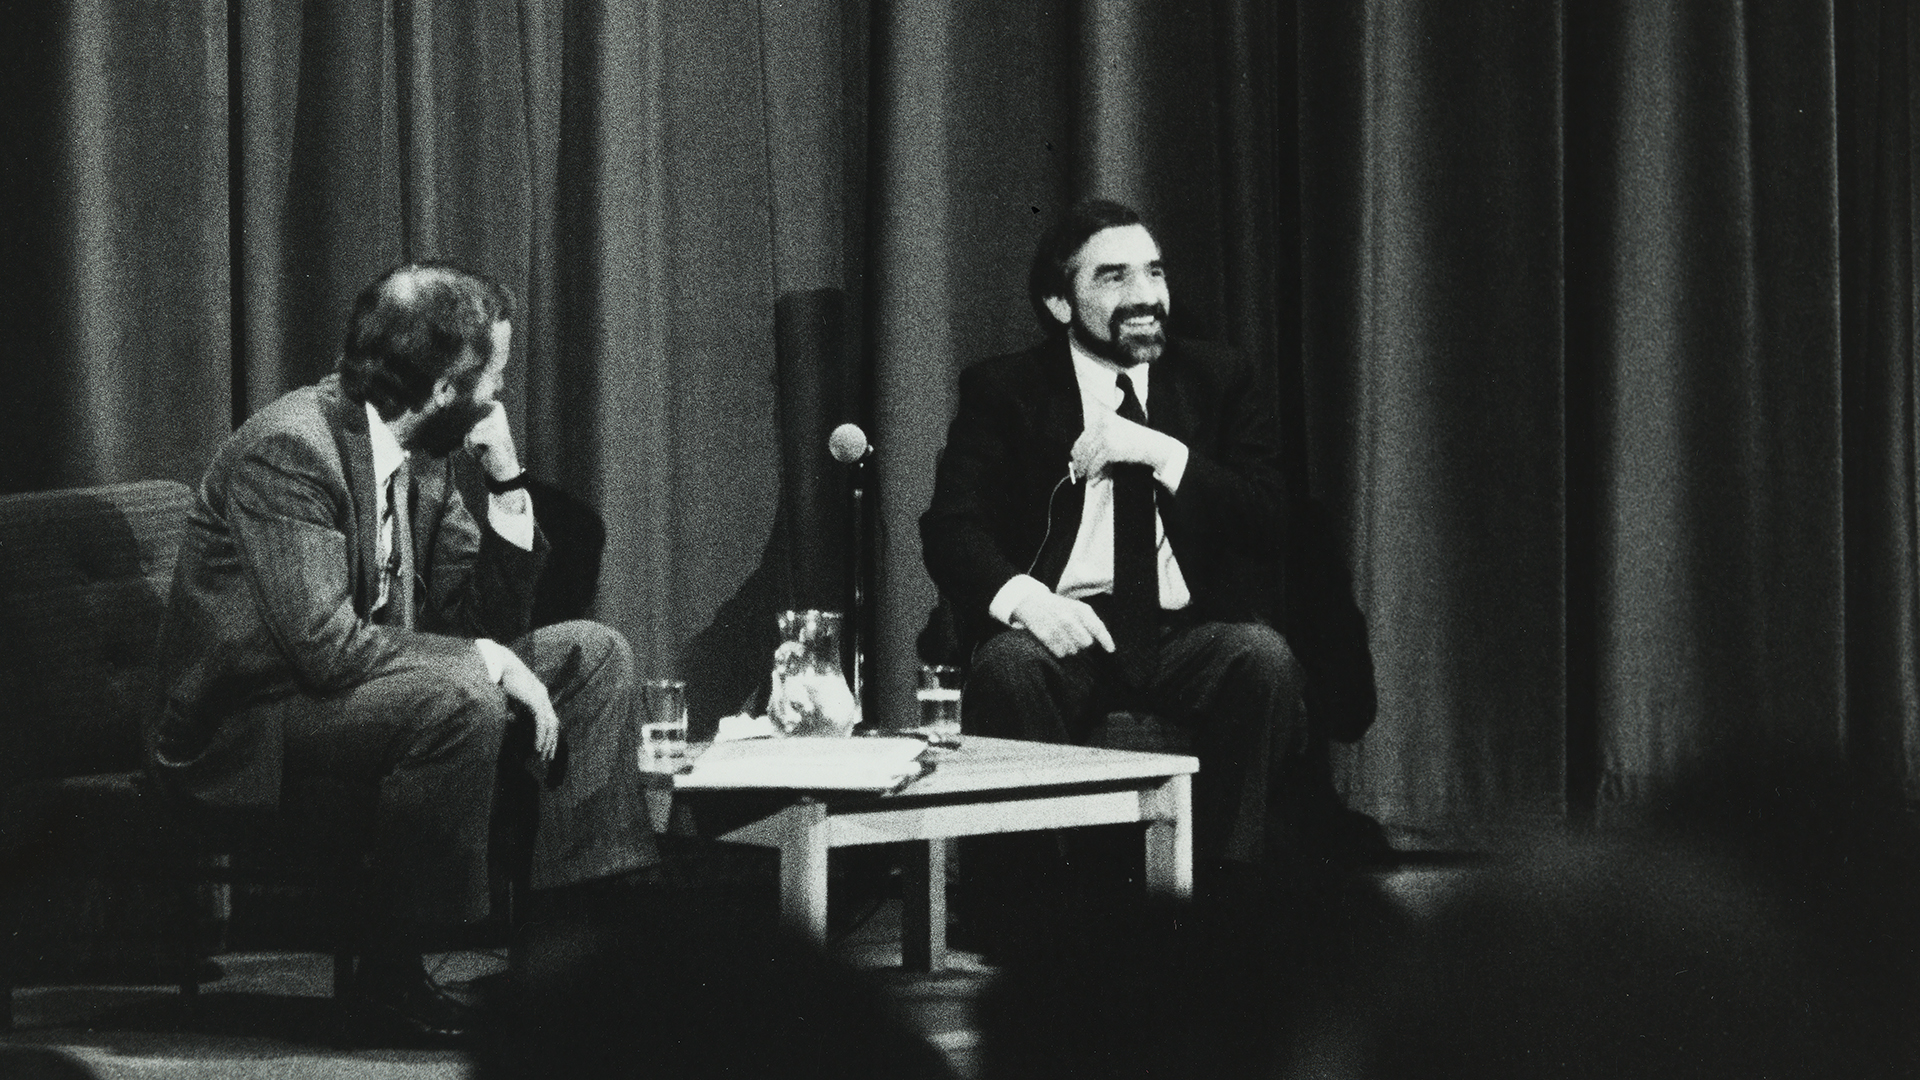 Martin Scorsese on stage at Filmhouse, 1985